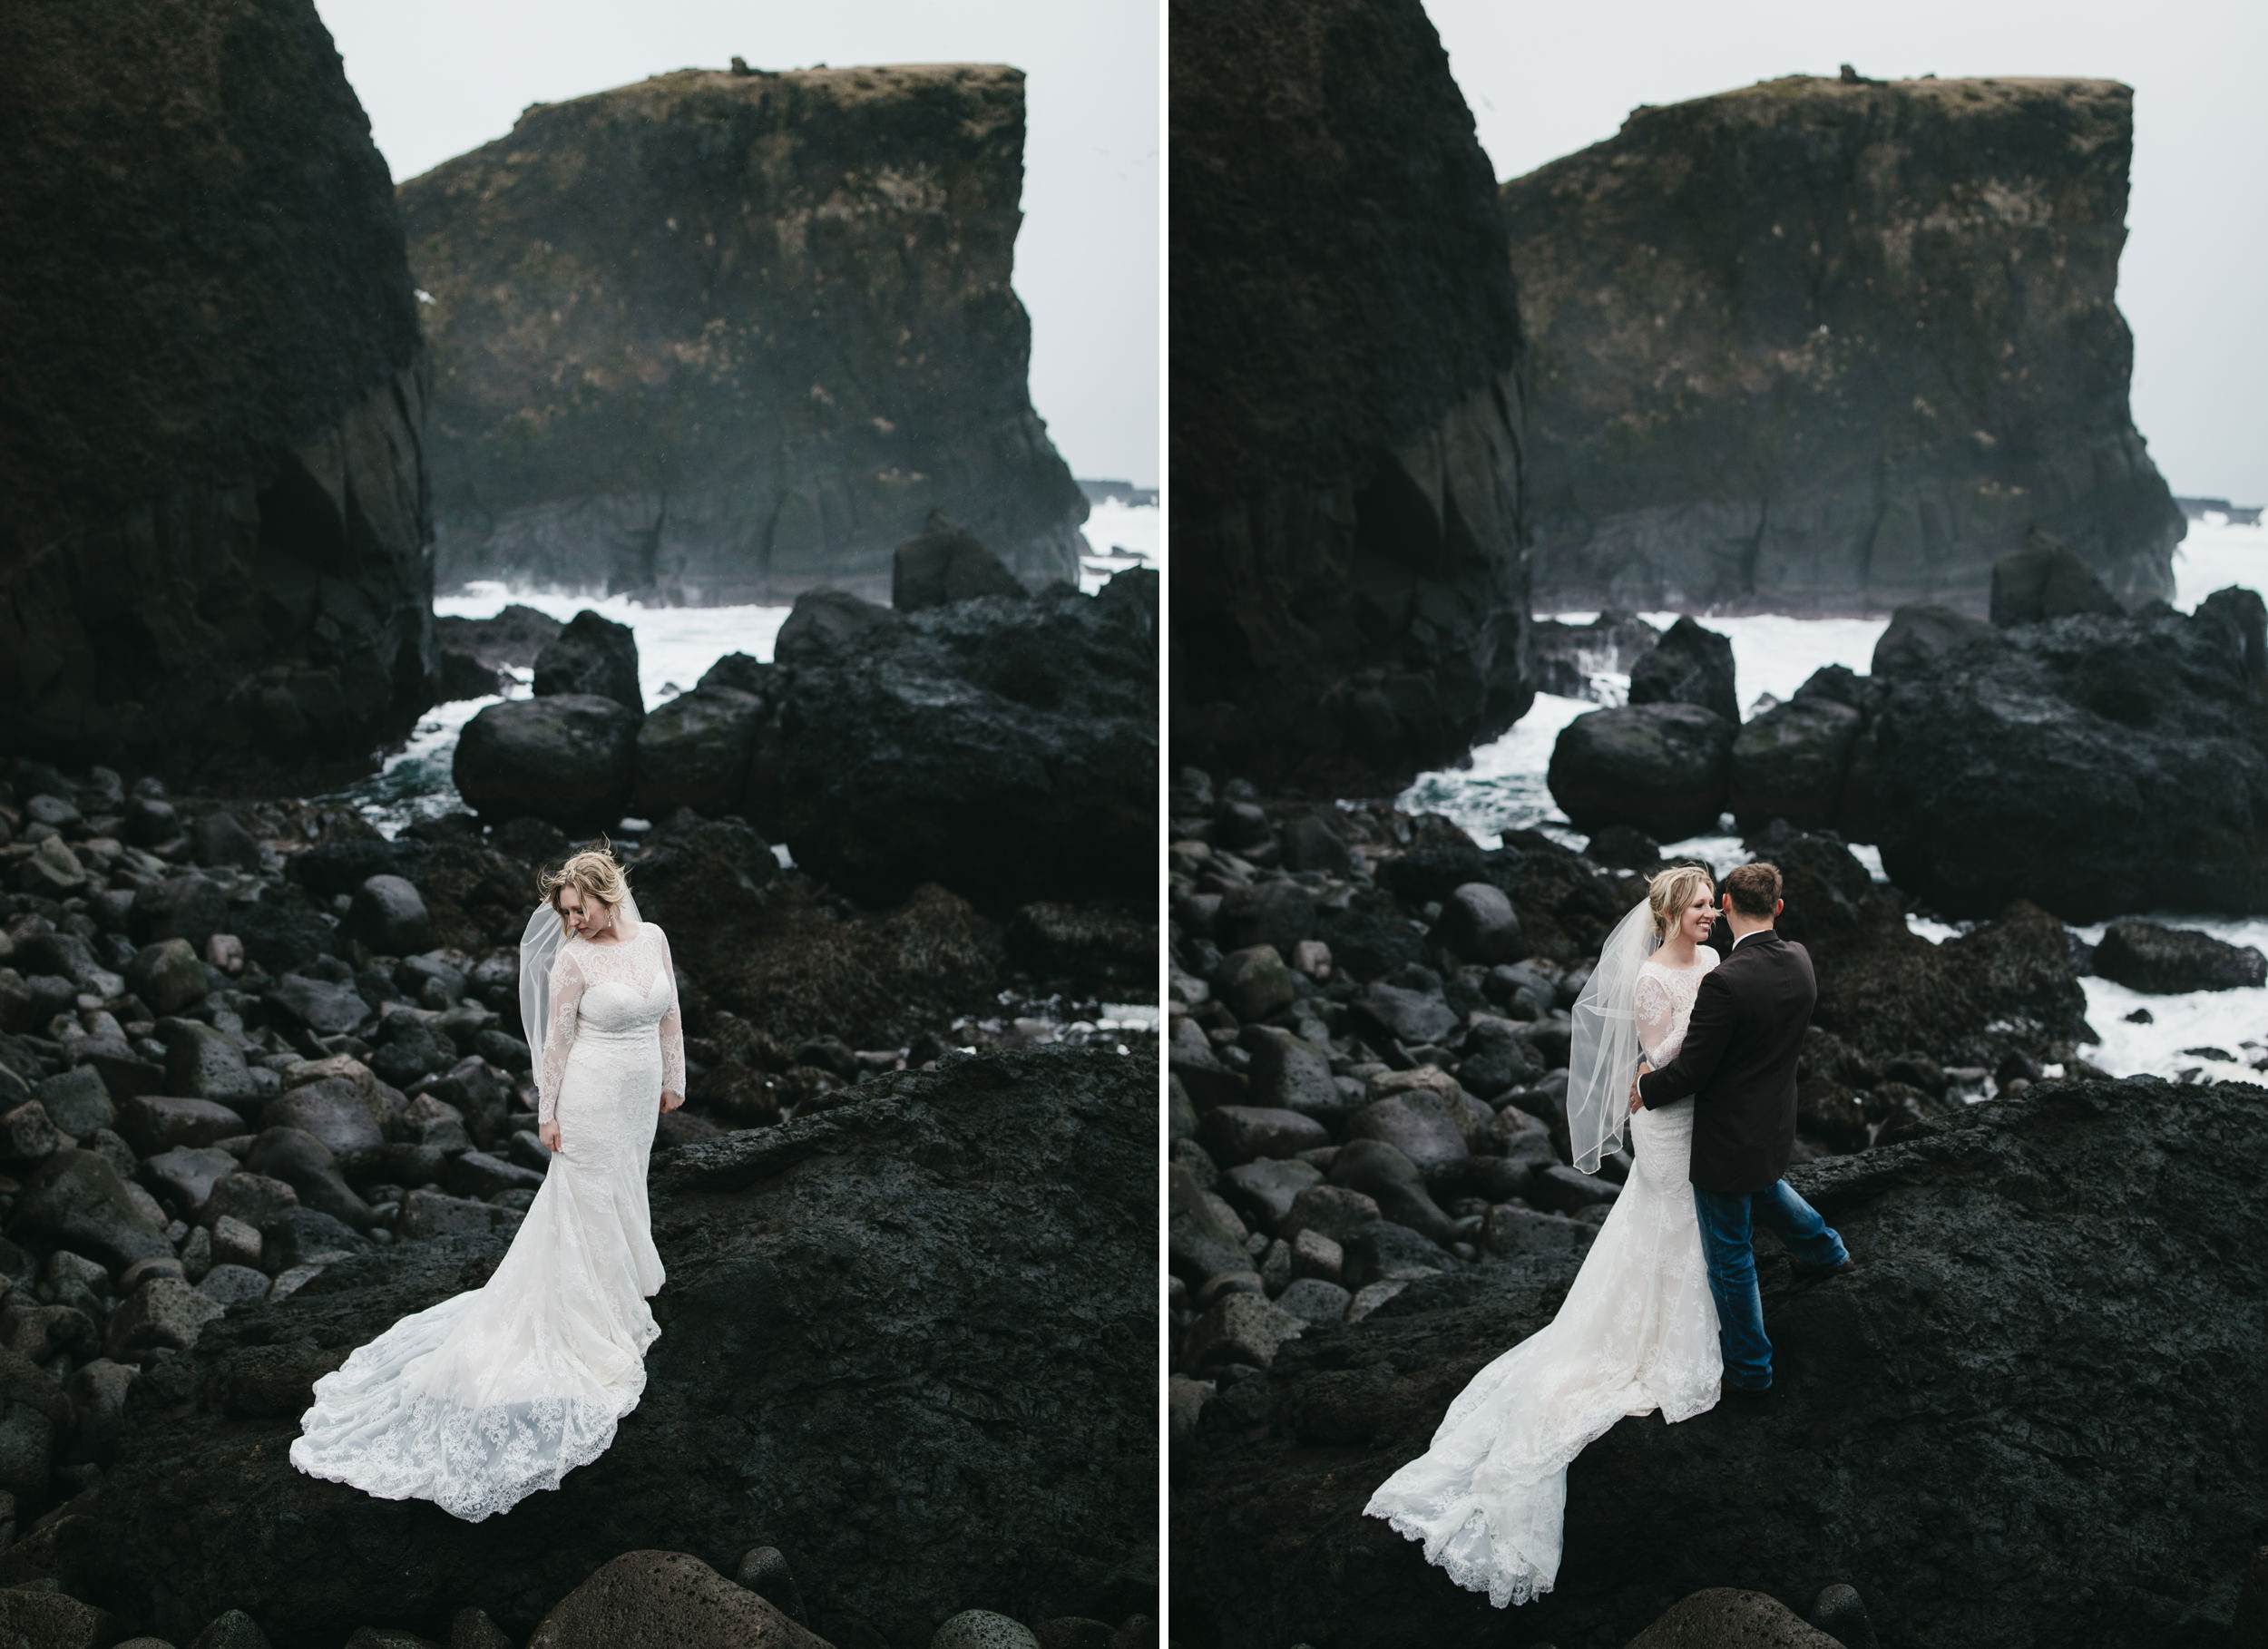 A beautiful bride stands surrounded by rocky cliffs and crashing waves during her elopement adventure session in Iceland by wedding photographers colby and jess, colbyandjess.com